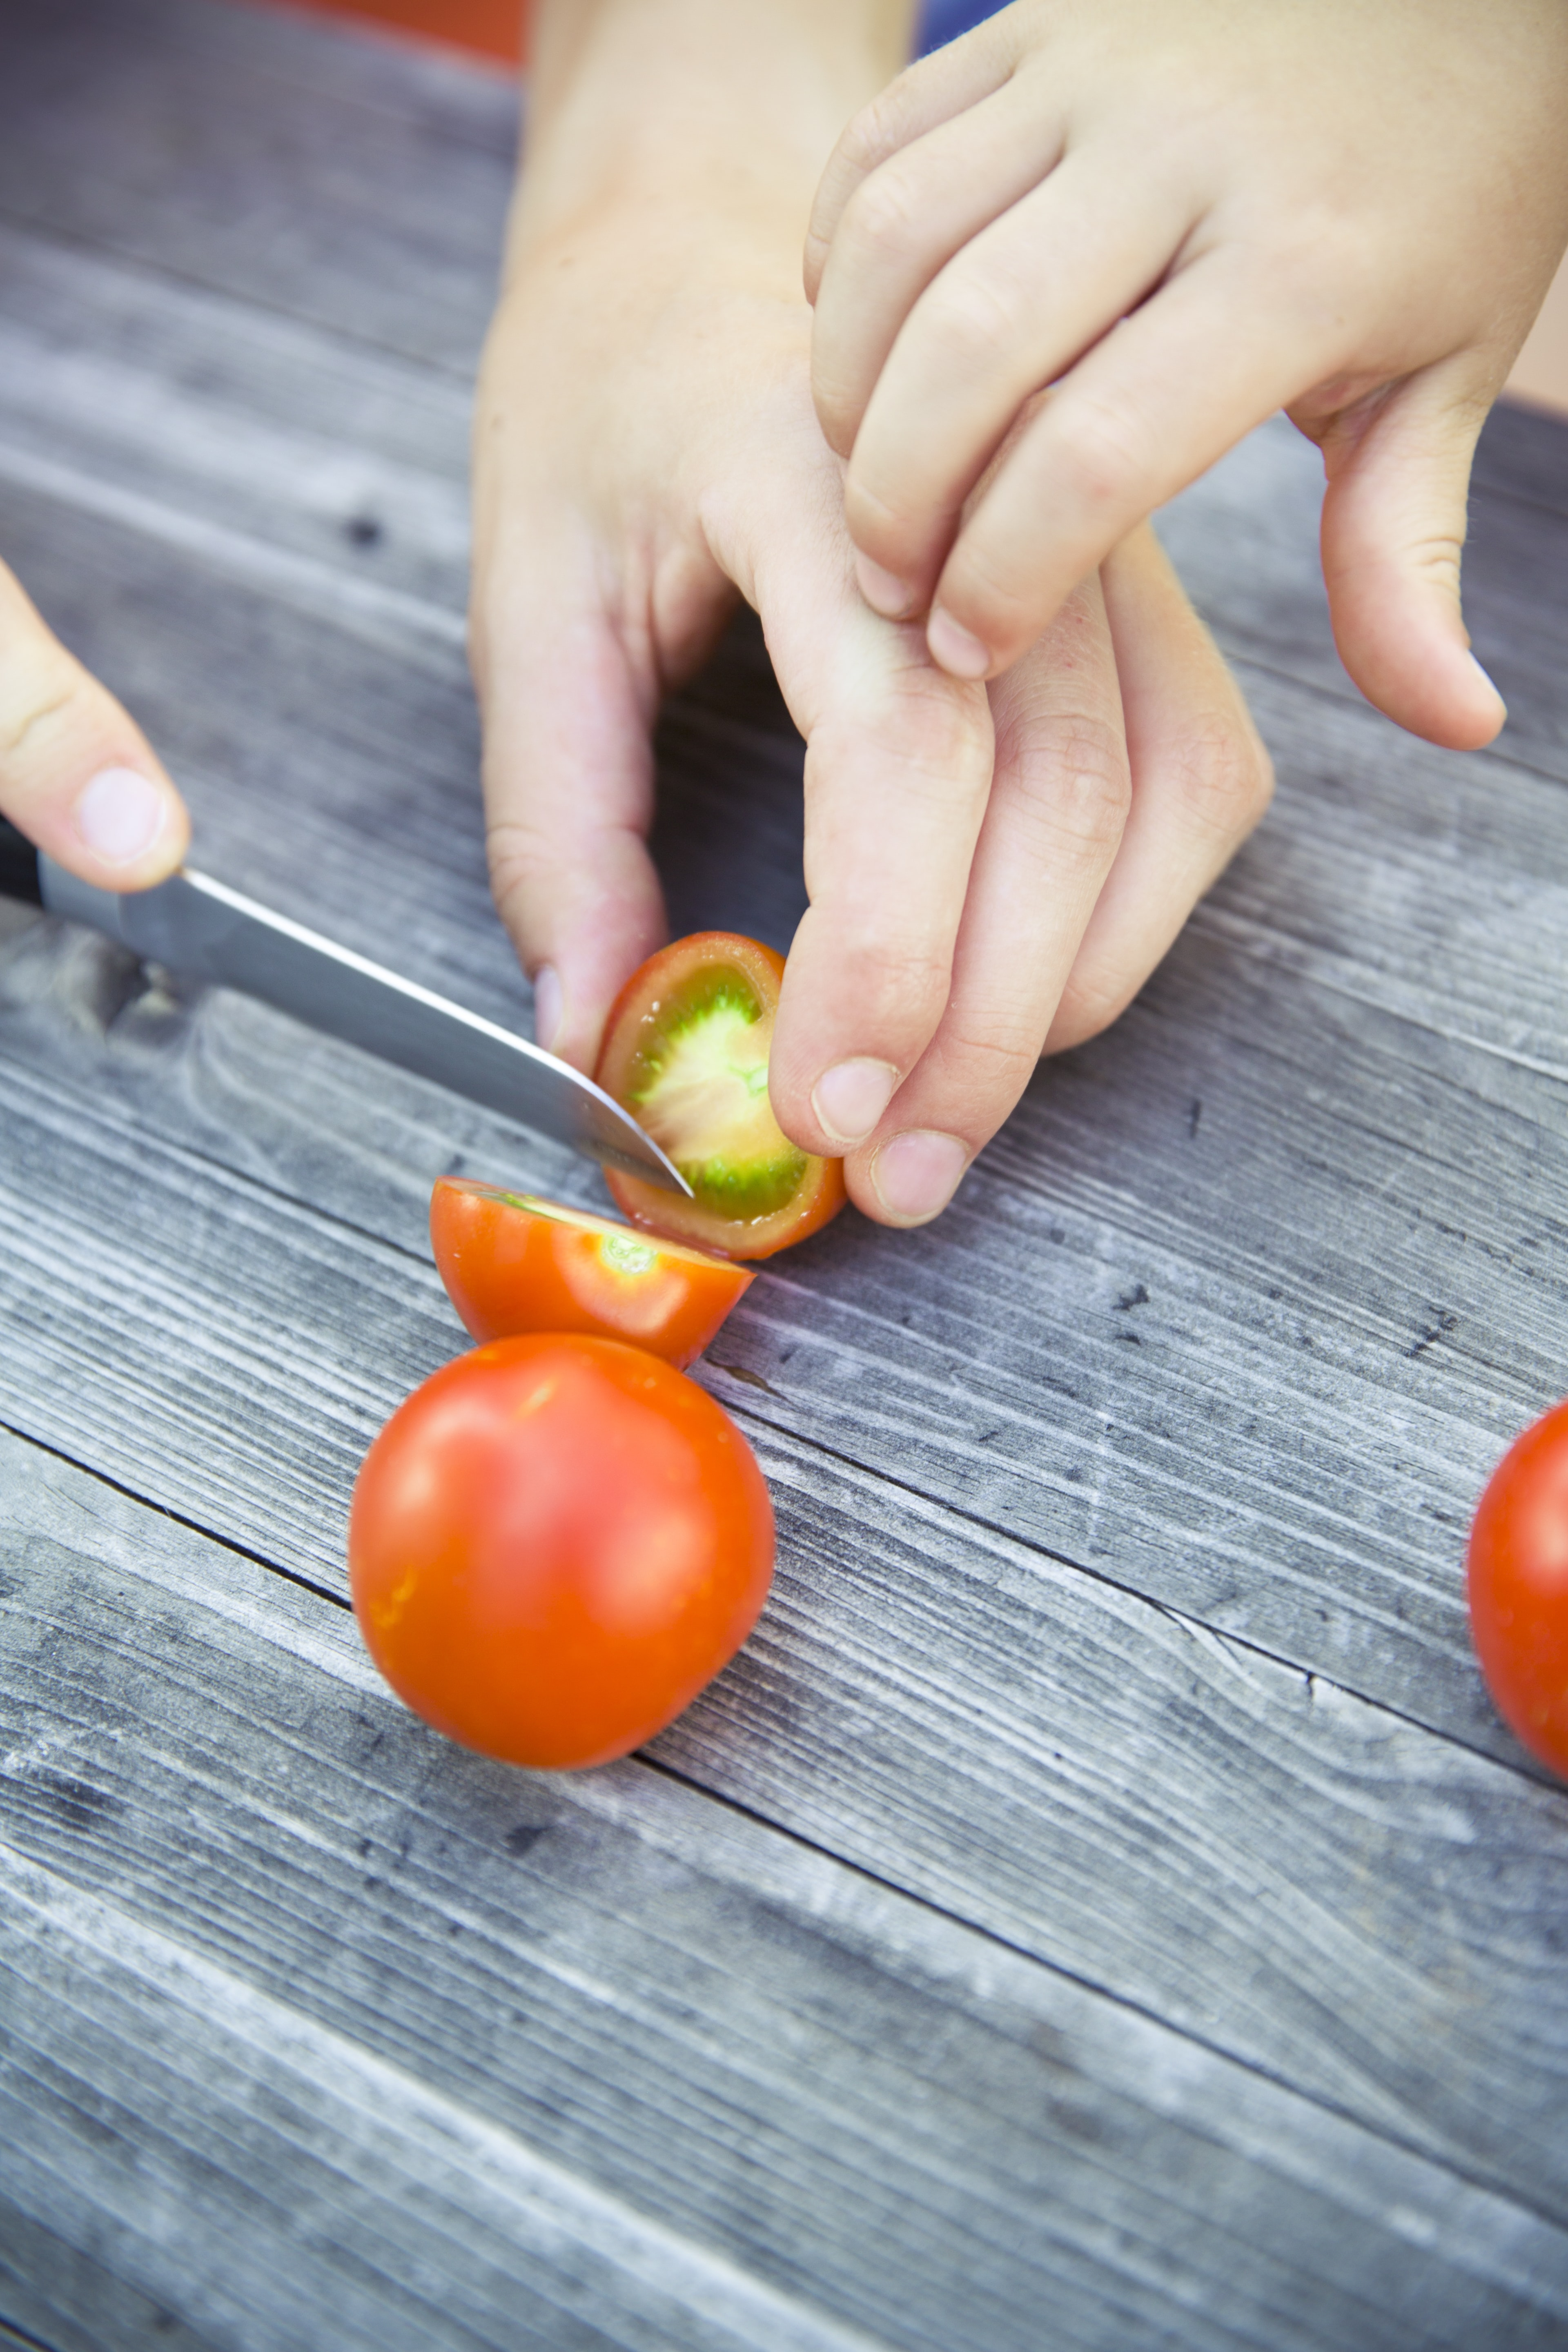 person slicing tomatoe